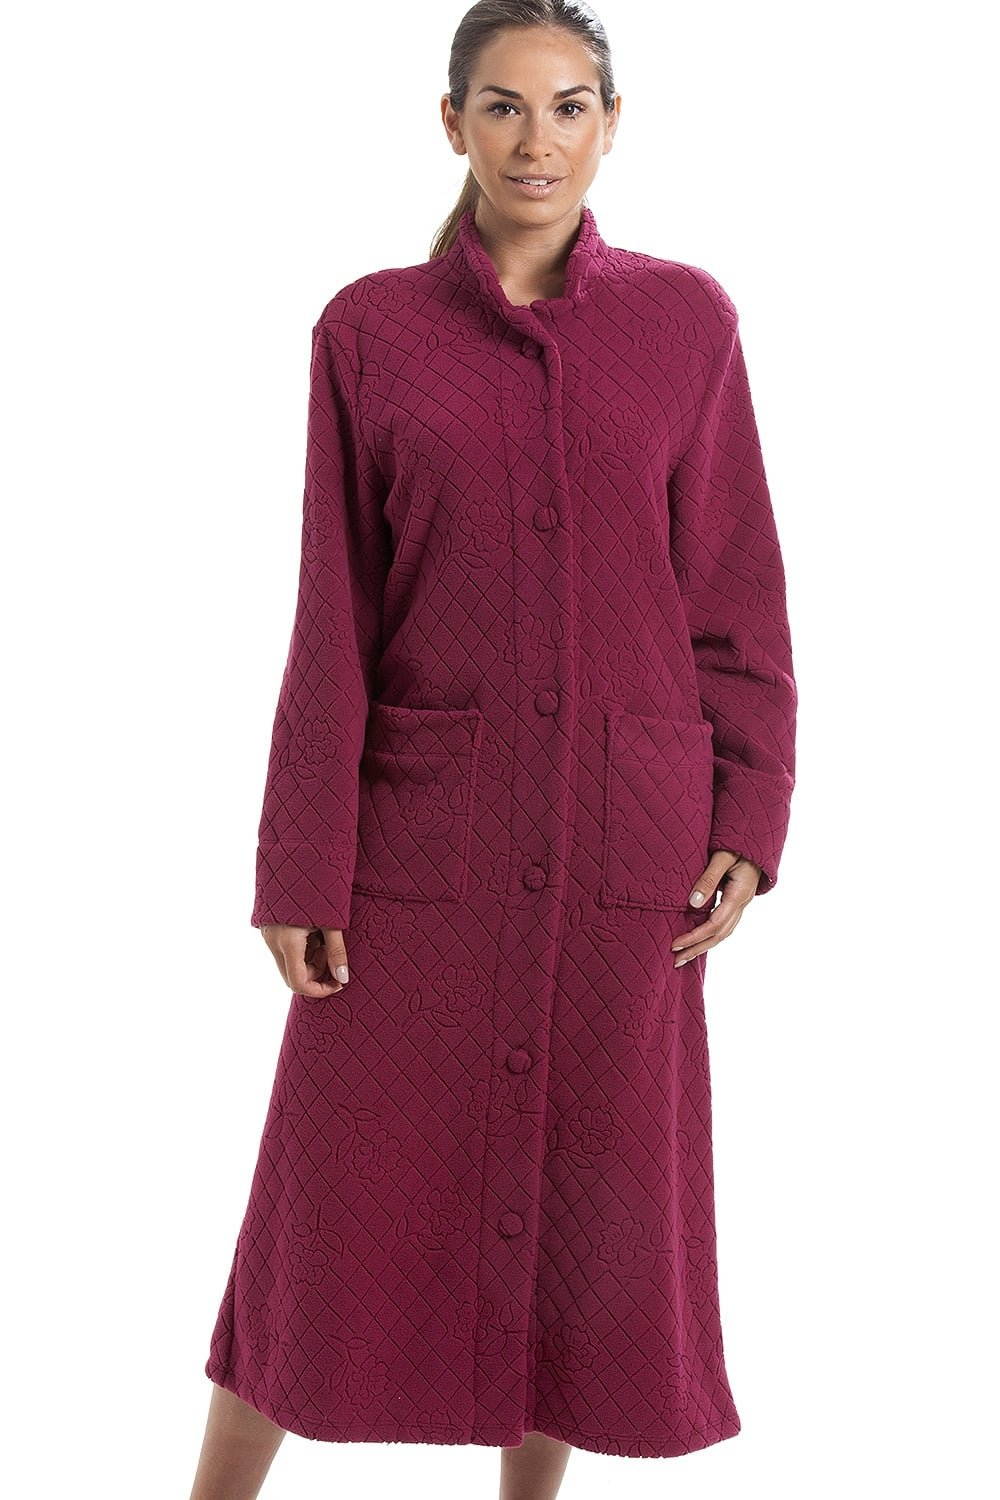 Camille Womens Various Colours Soft Fleece Floral Full Length Button Up Housecoat